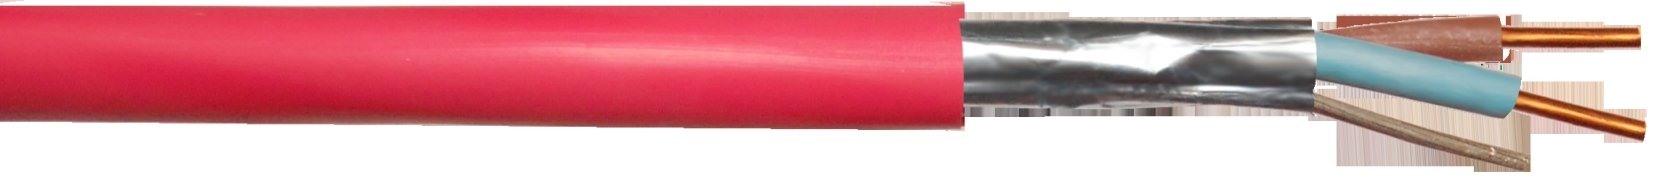 Webro Now Stock Firetec Fire Cable